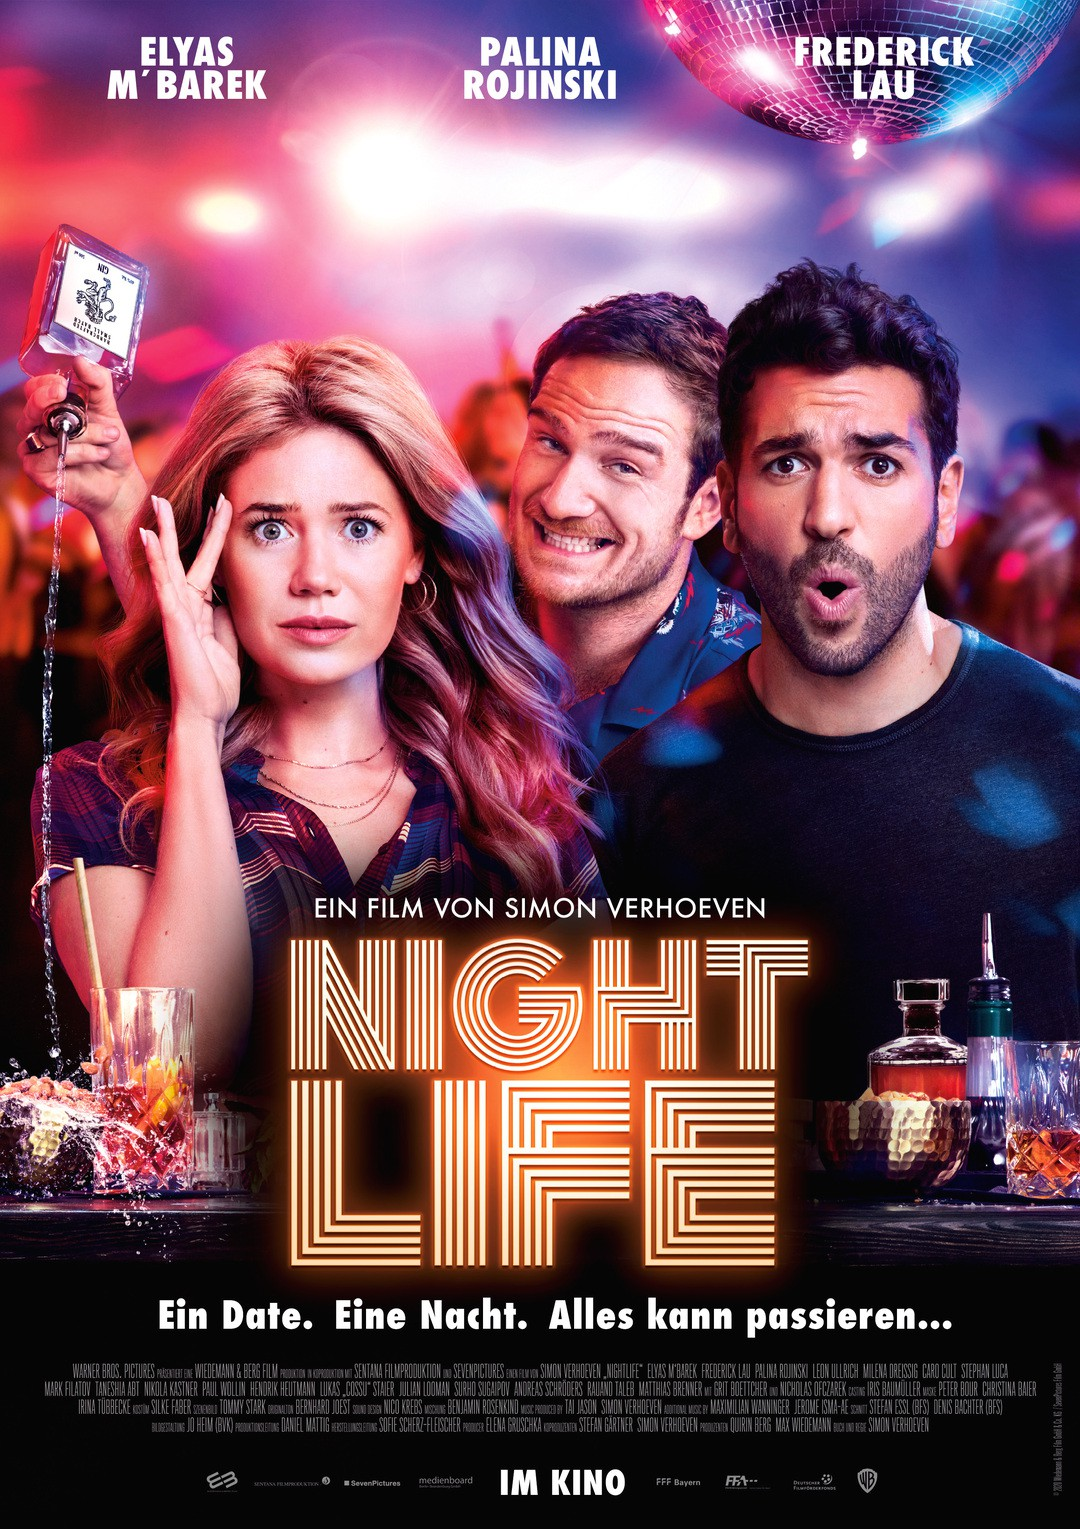 Nightlife Trailer - Bild 1 von 8